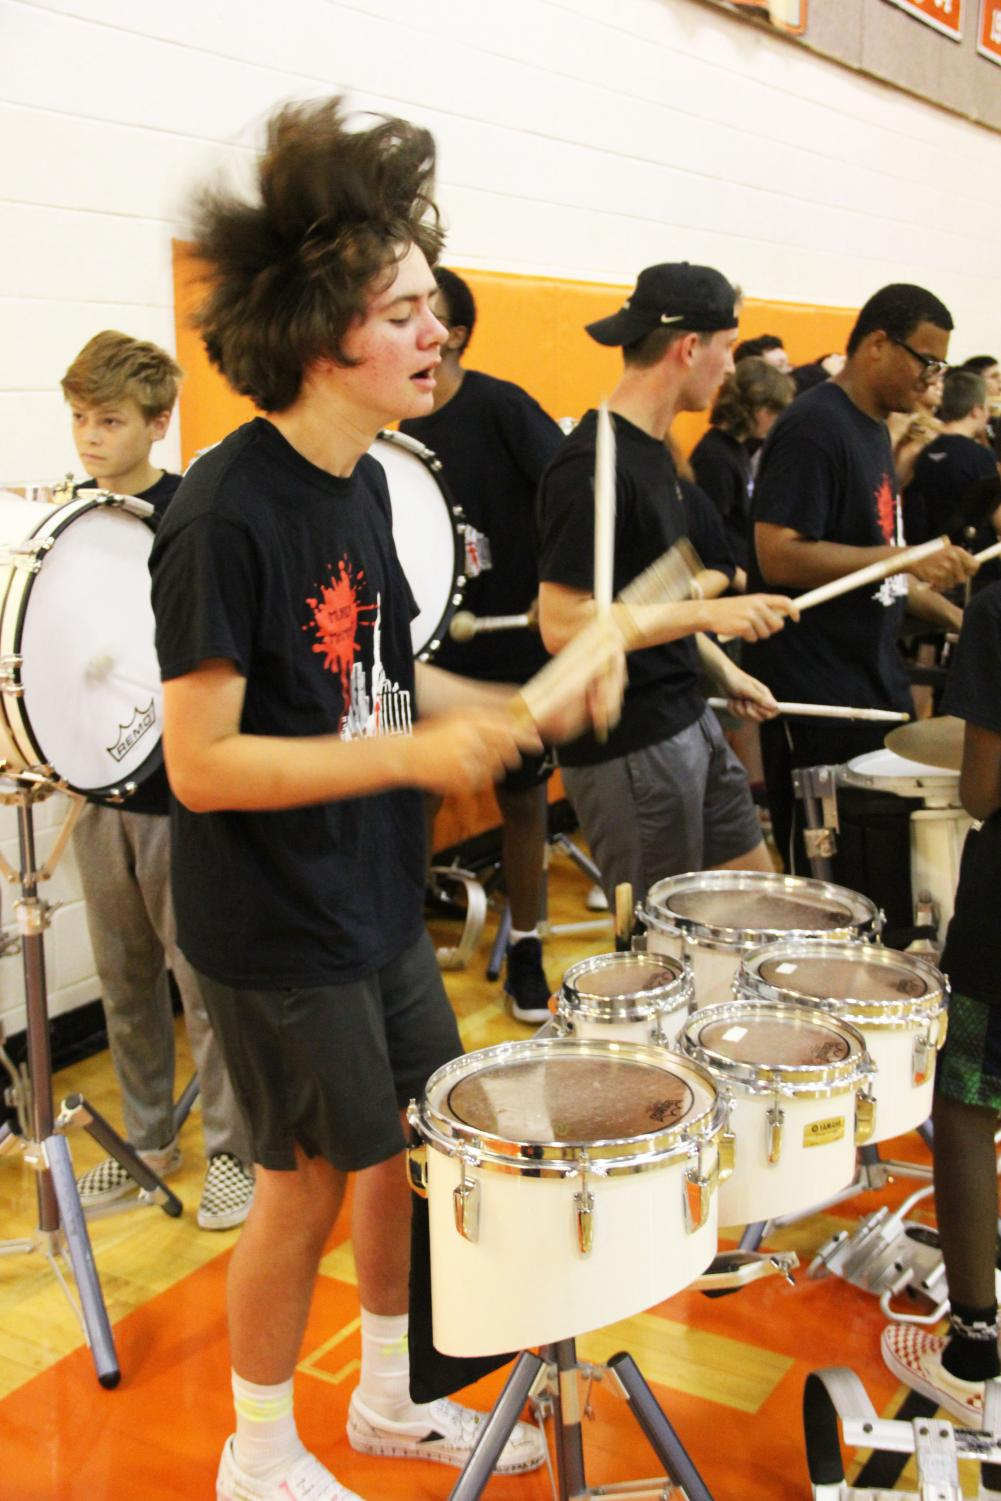 Sophomore+Lucas+Kirby+rocks+out+with+the+rest+of+the+RHS+drum+line.